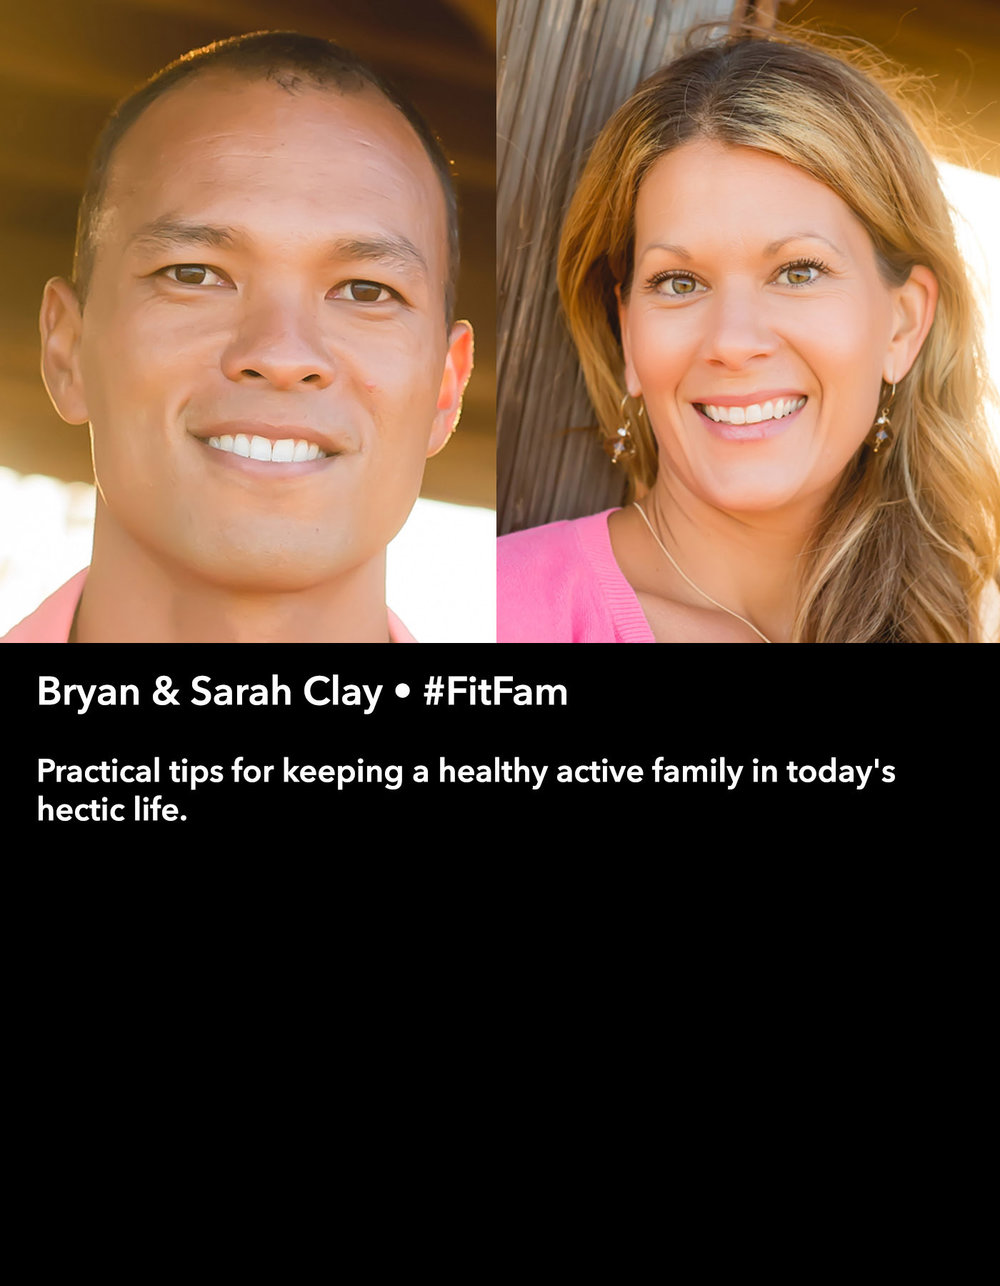 Bryan & Sarah Clay • #FitFam • Saturday Morning, March 18 • 10:30 – 11:45 am